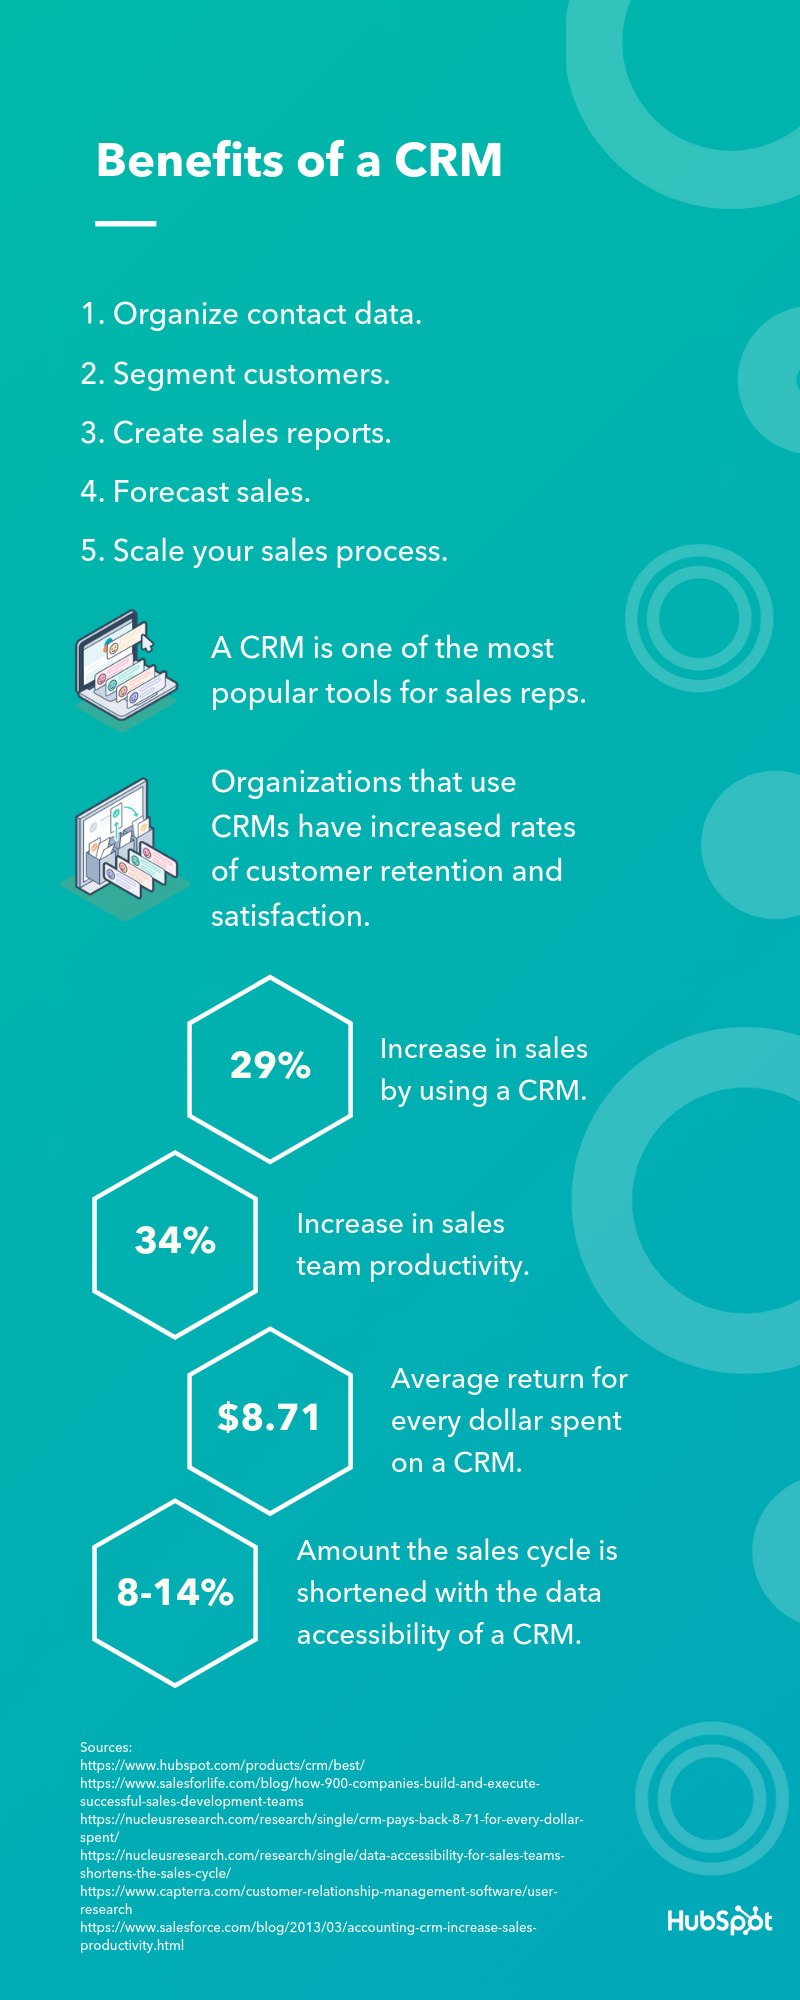 Benefits of a CRM Infographic from HubSpot